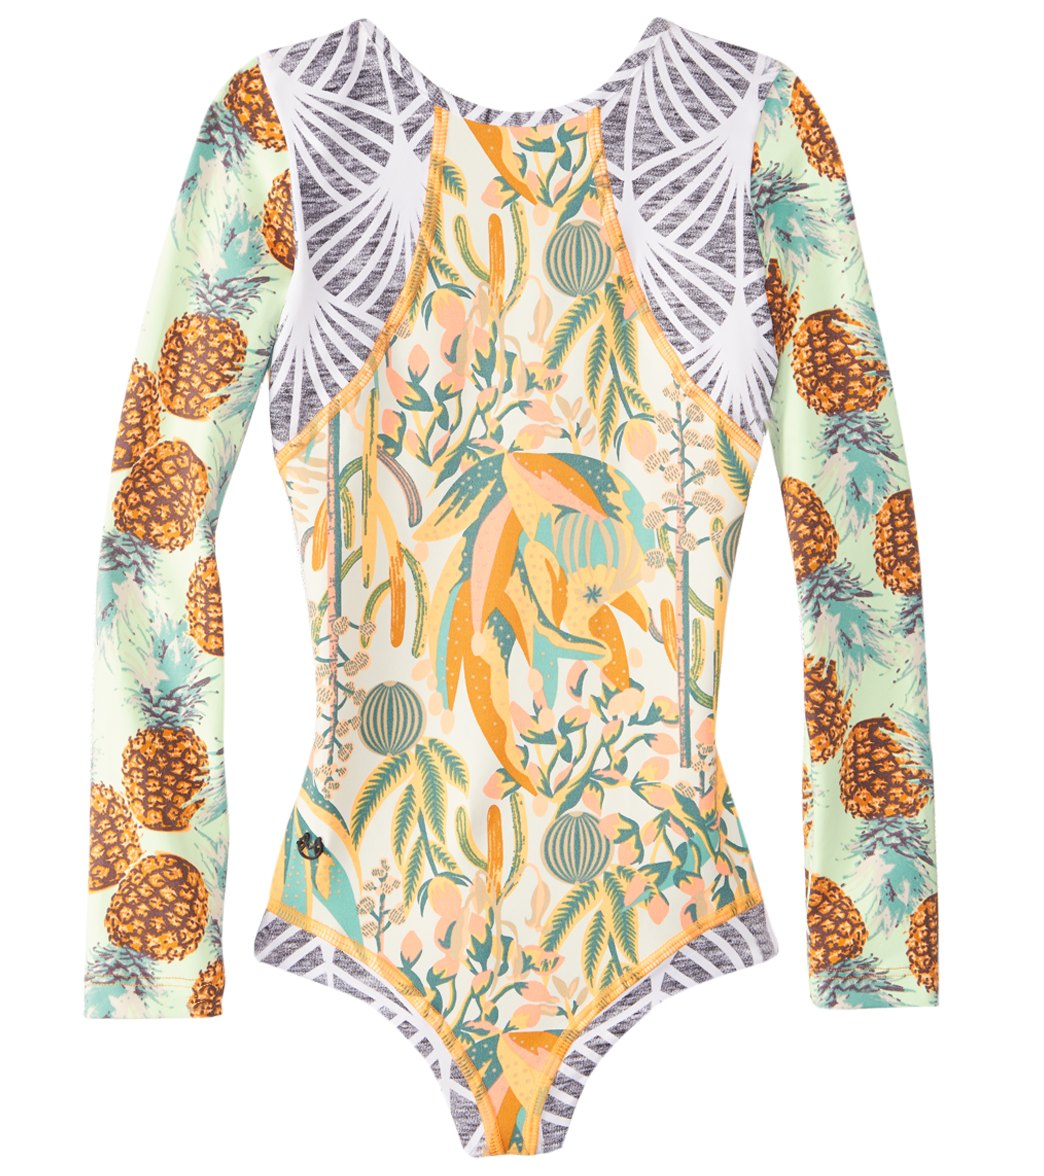 ac8d80566b1 Maaji Girls' Sunsand Long Sleeve One Piece Swimsuit (2T-16) at  SwimOutlet.com - Free Shipping